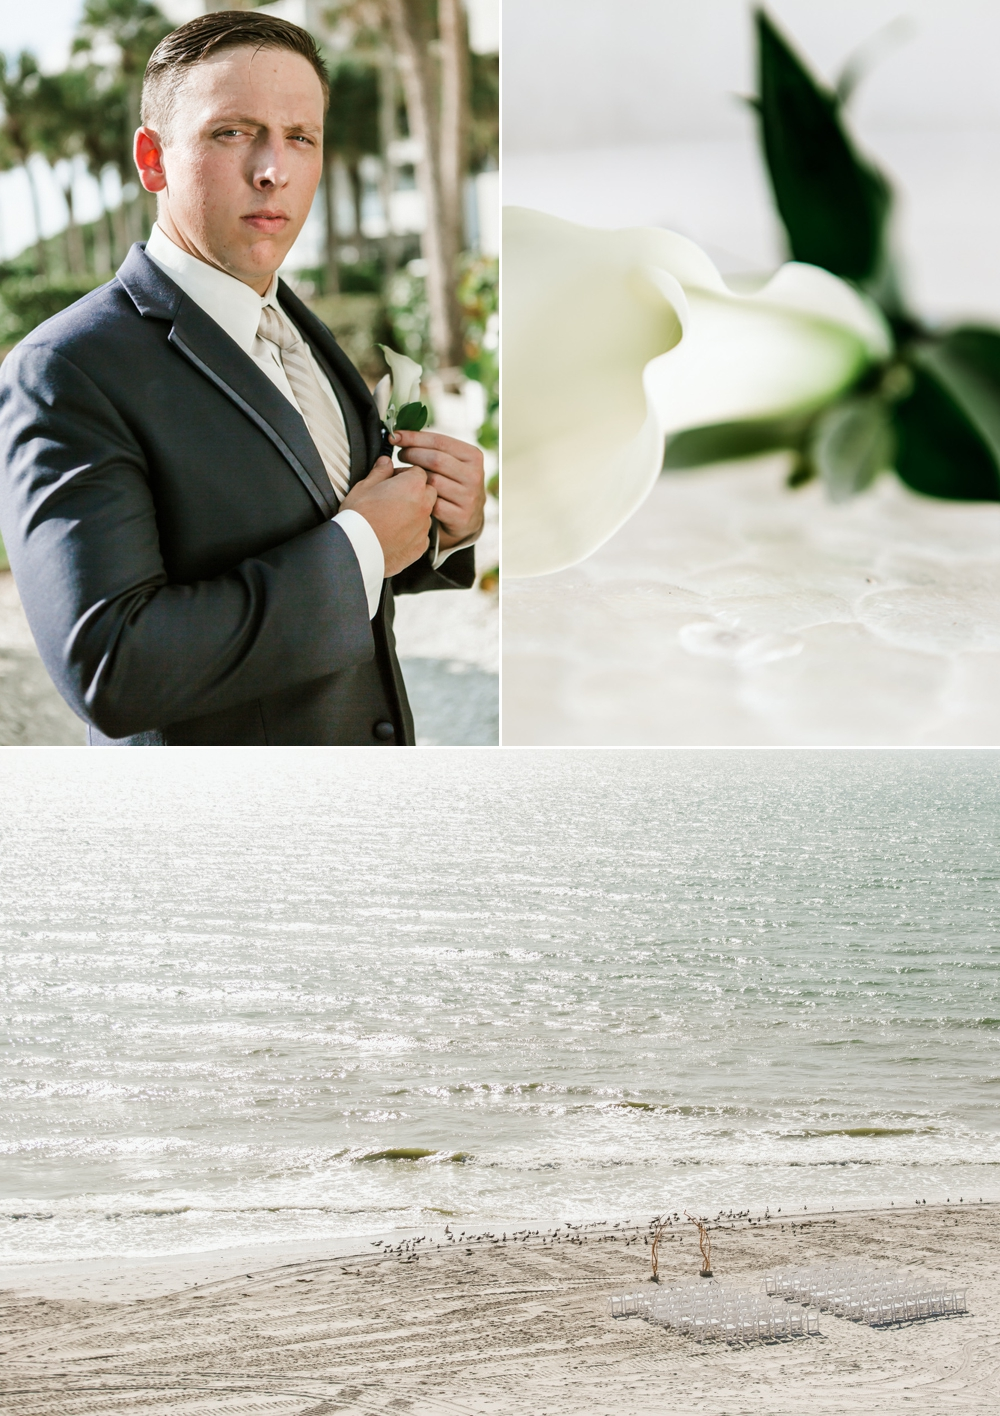 Longboat-Key-Club-Wedding-Golden-boho-inspired 19.jpg